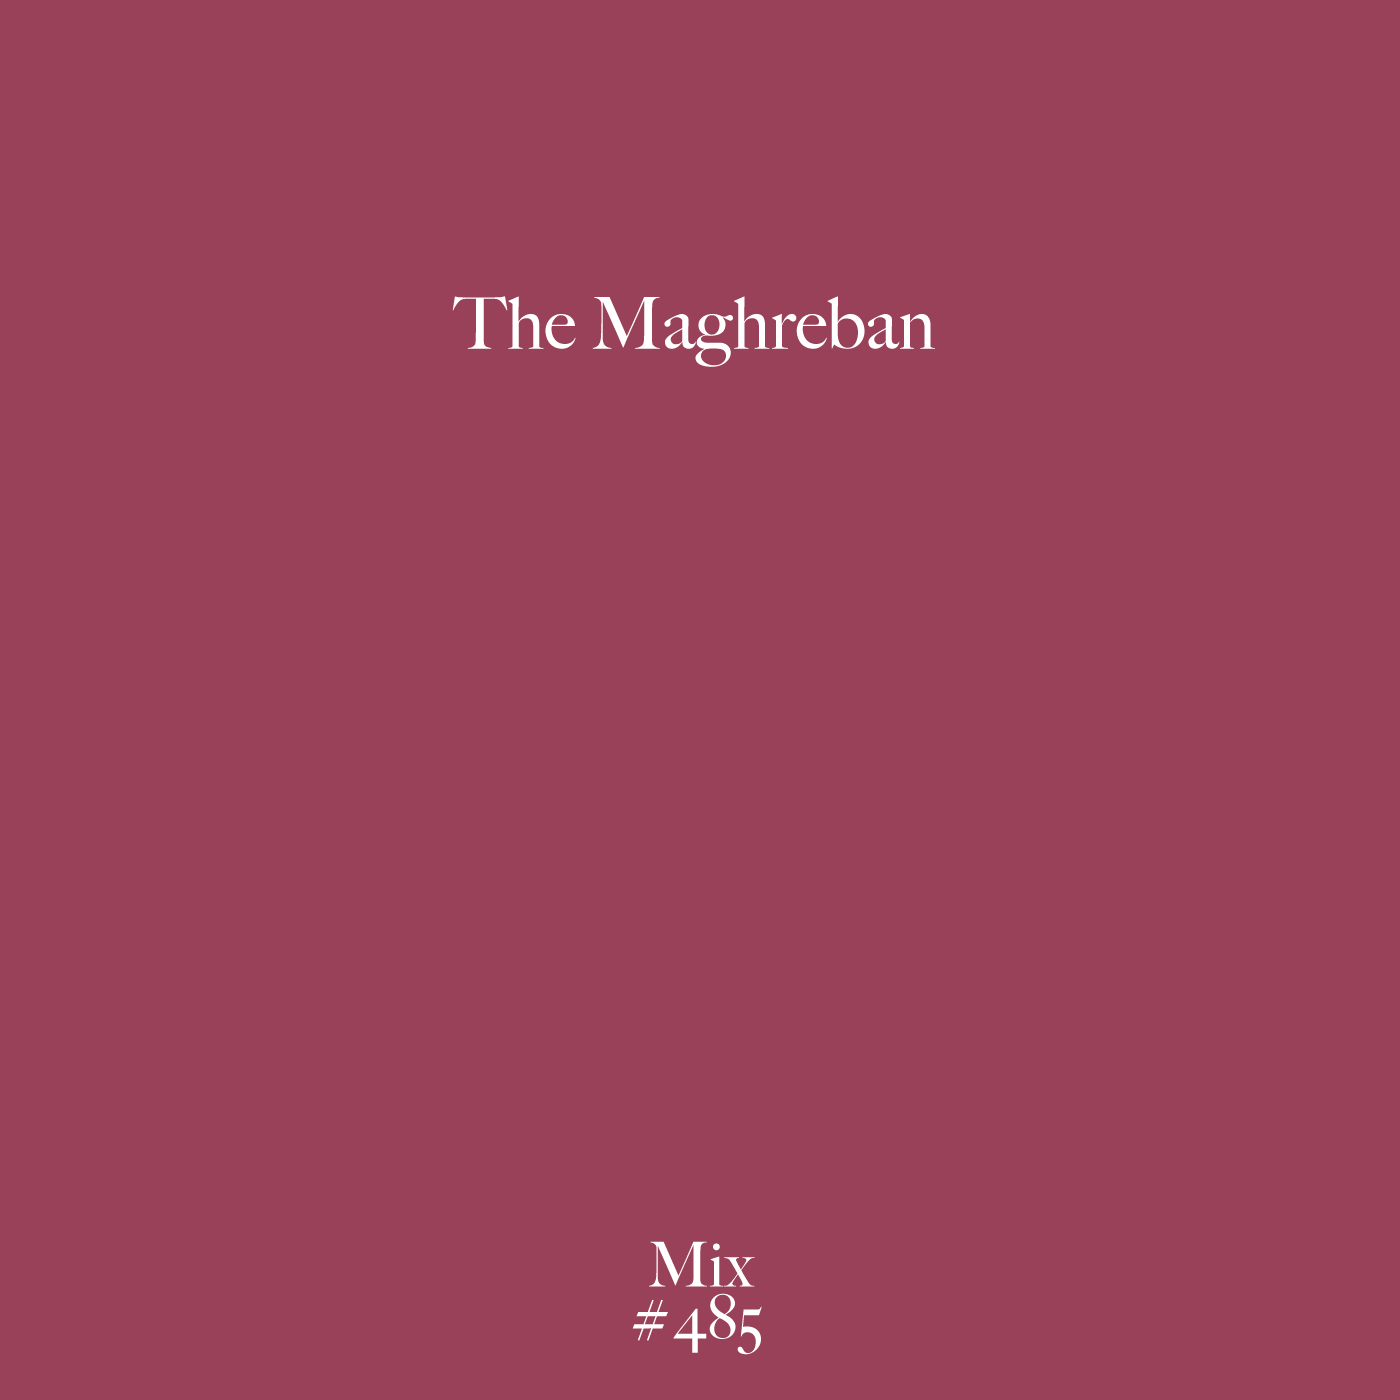 The Maghreban, Mix, Test Pressing, R&S Records, Breaks, Banging, Rave